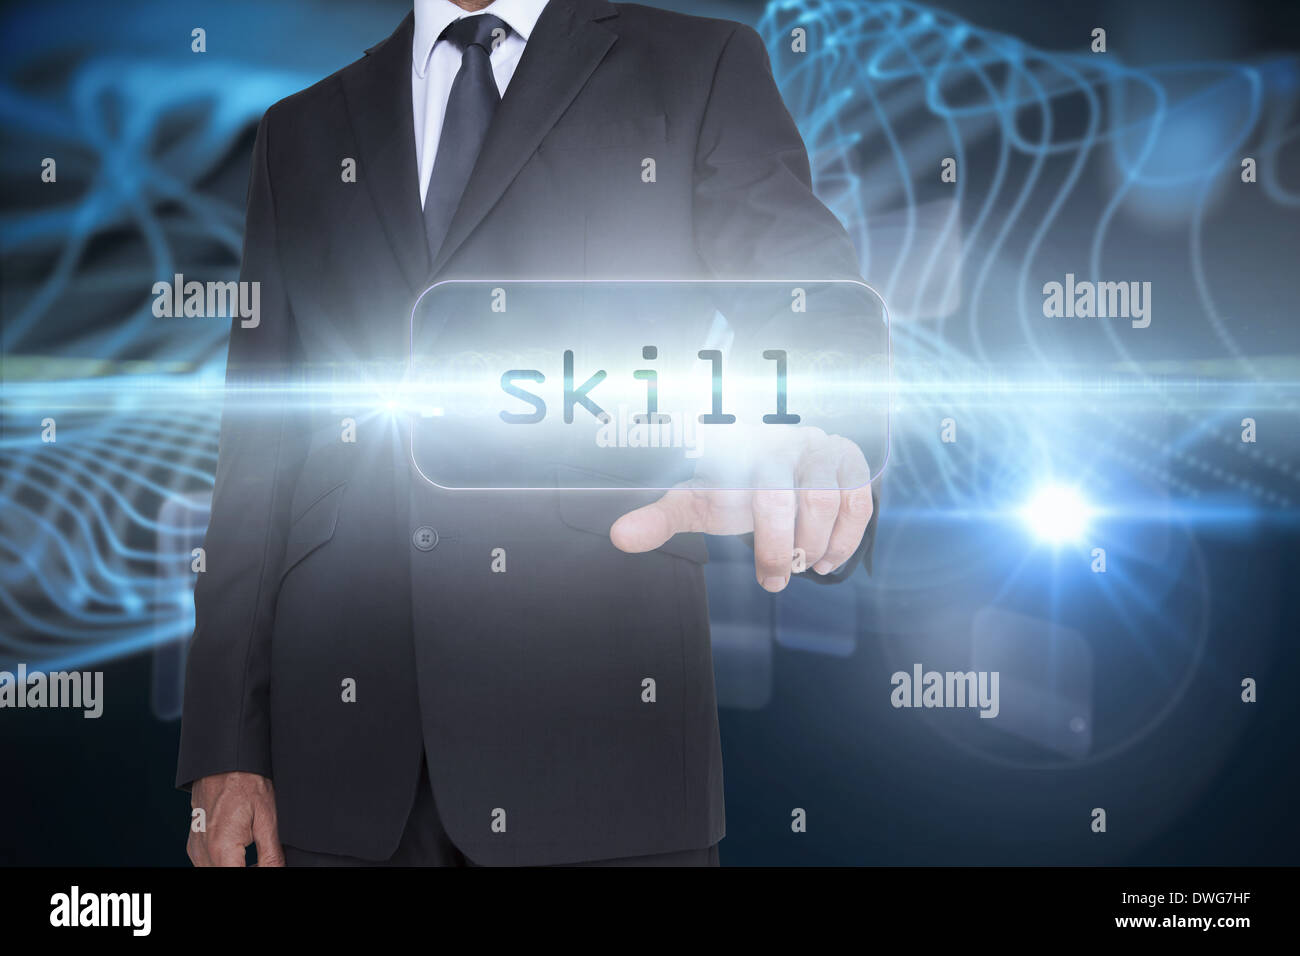 Skill against abstract glowing black background - Stock Image